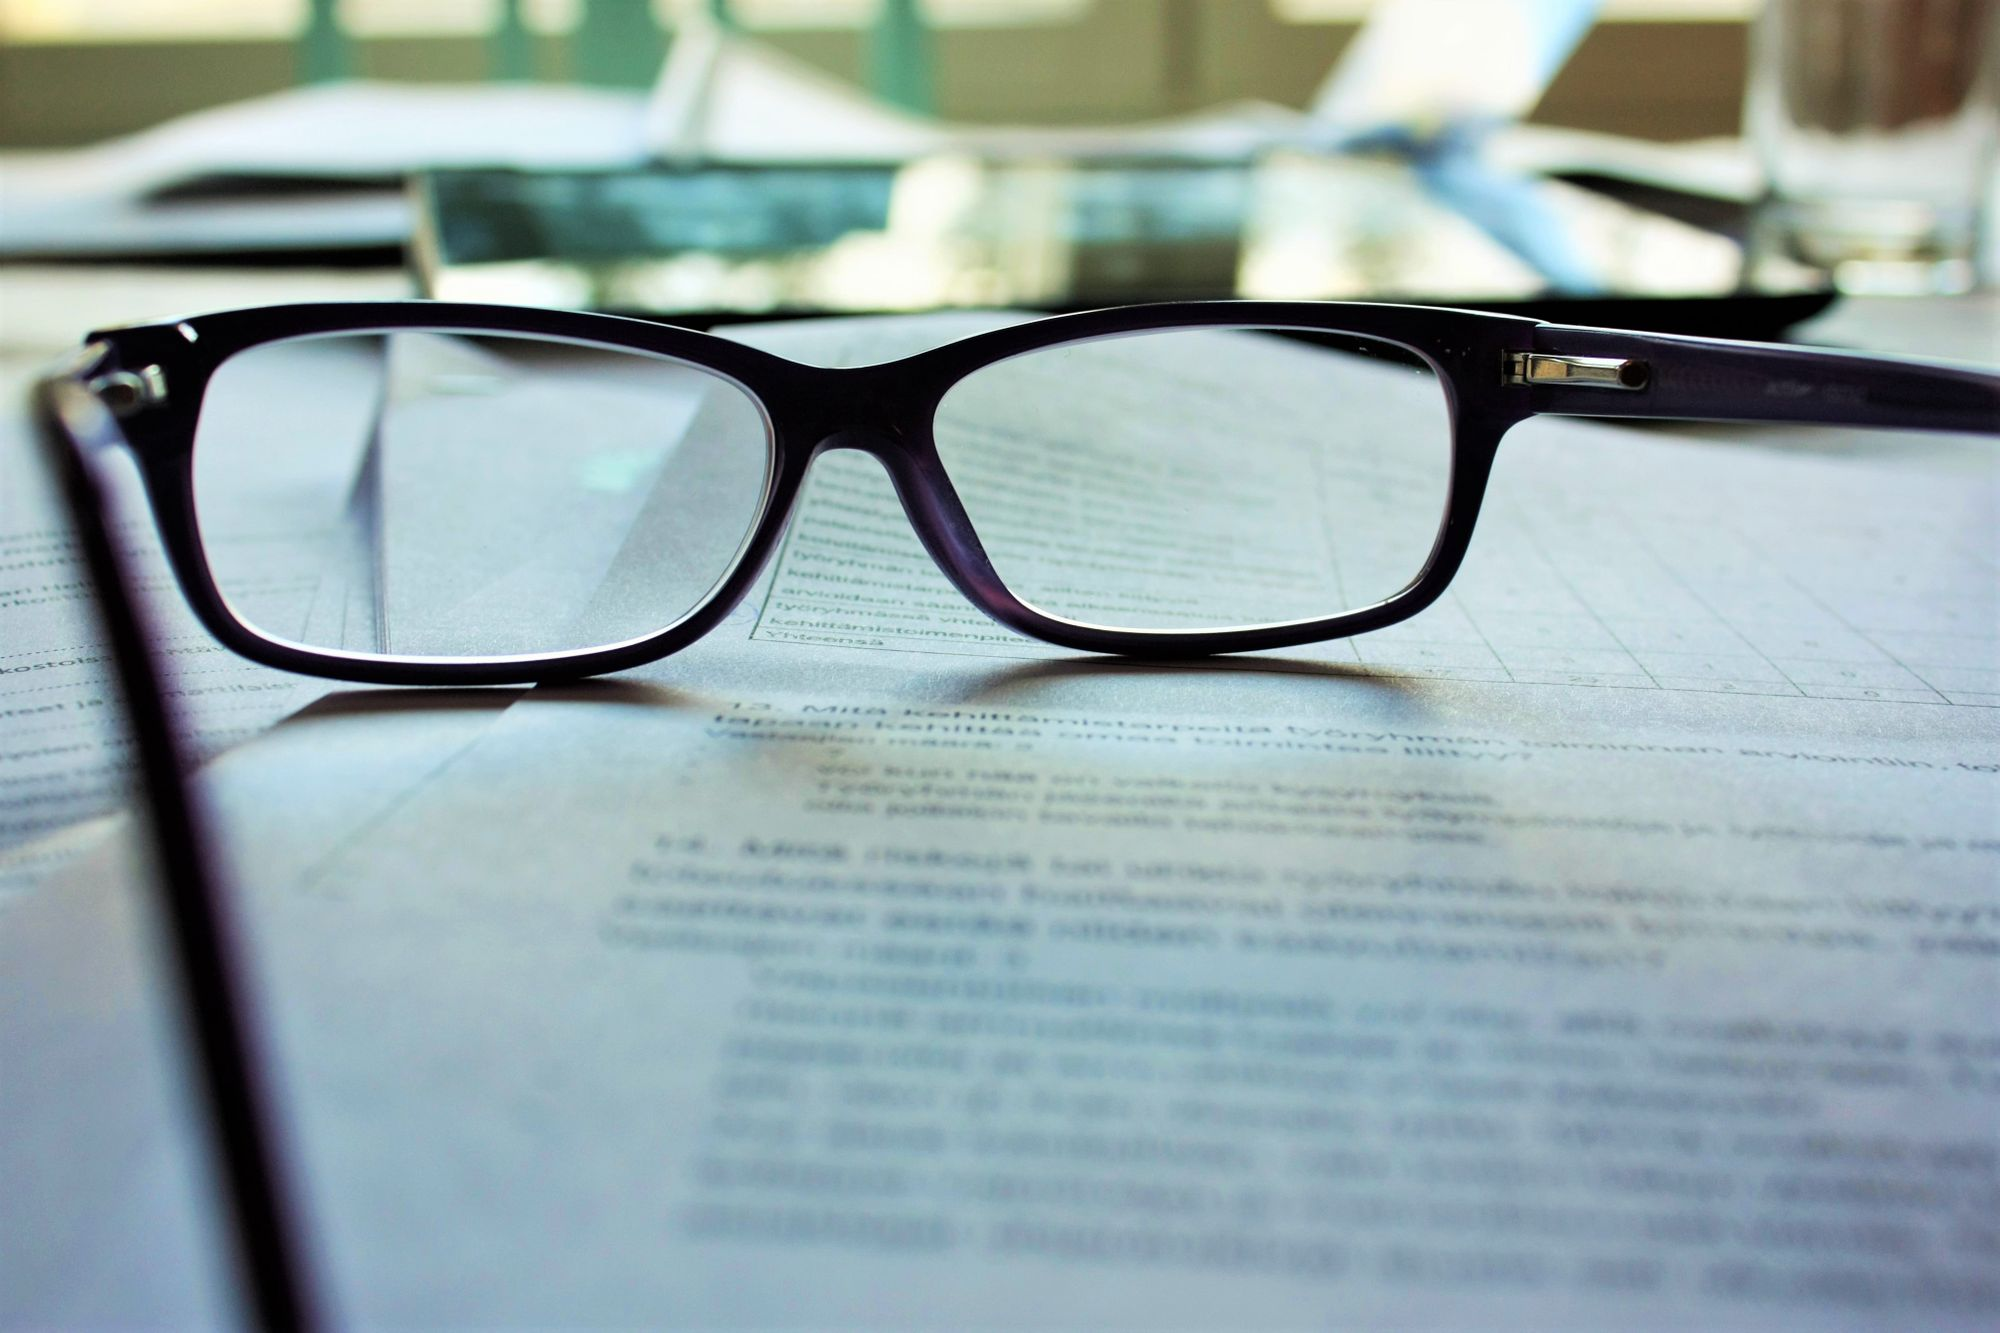 Things to consider when negotiating an ERP deal